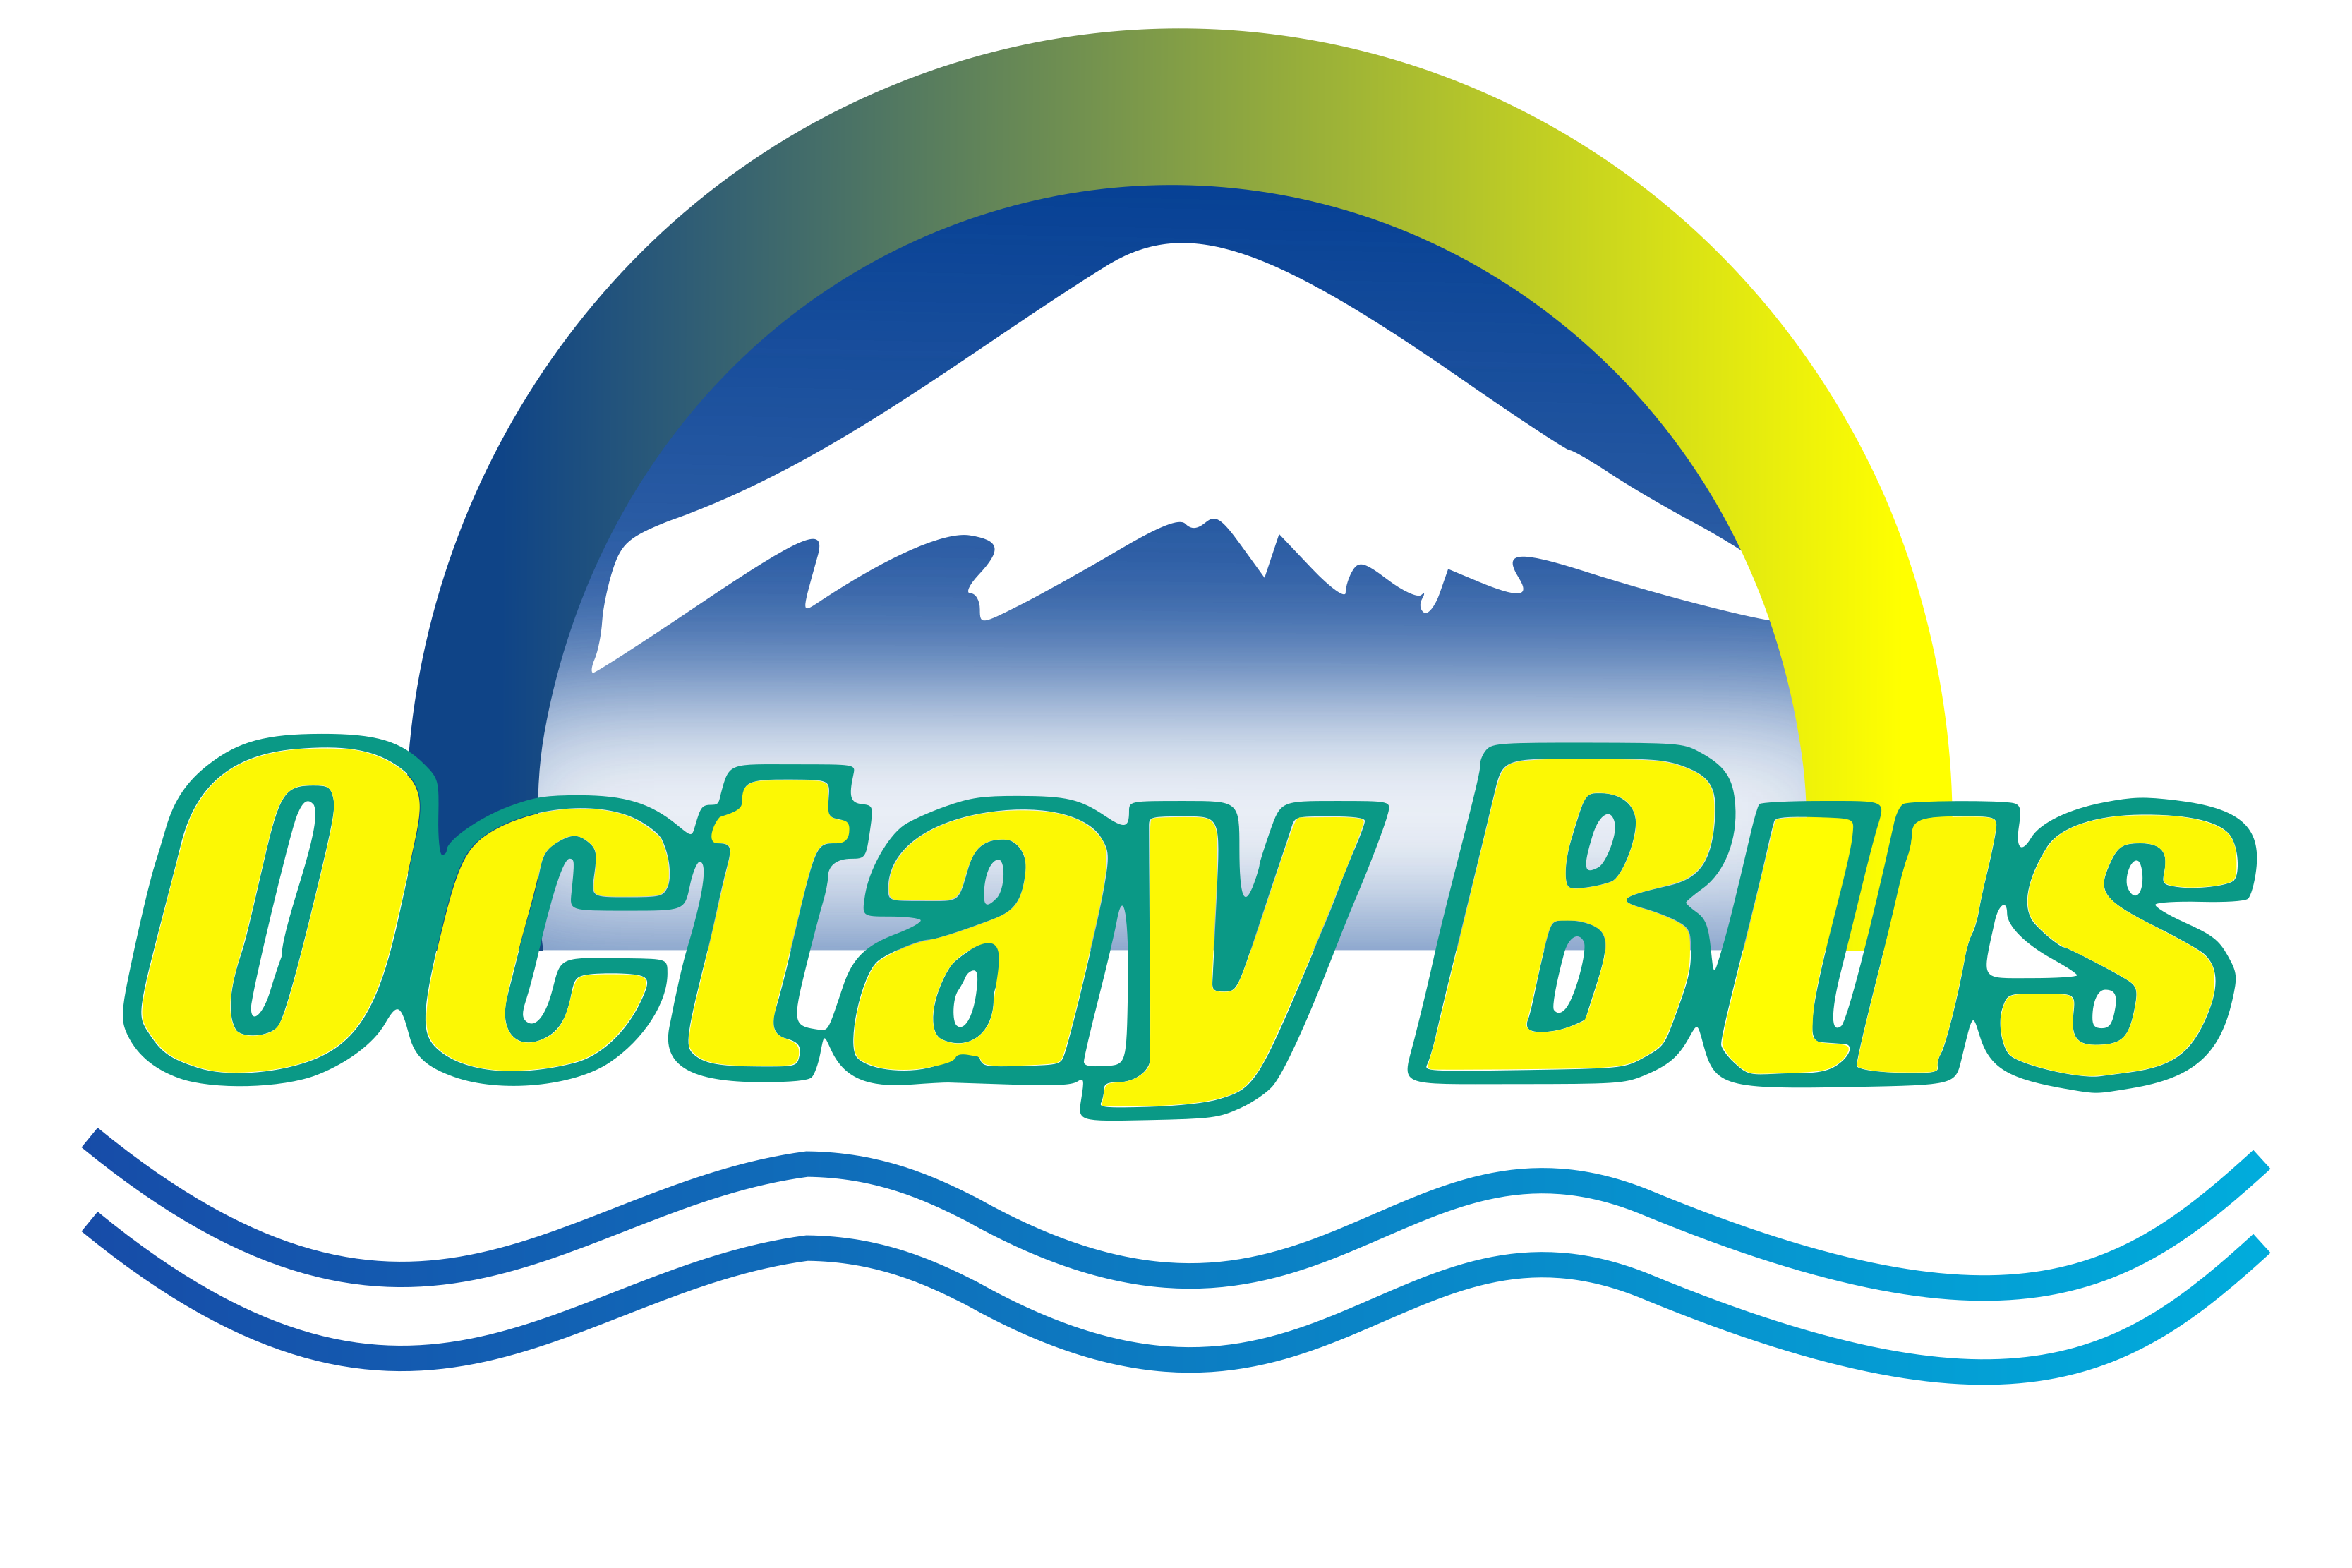 Octay Bus